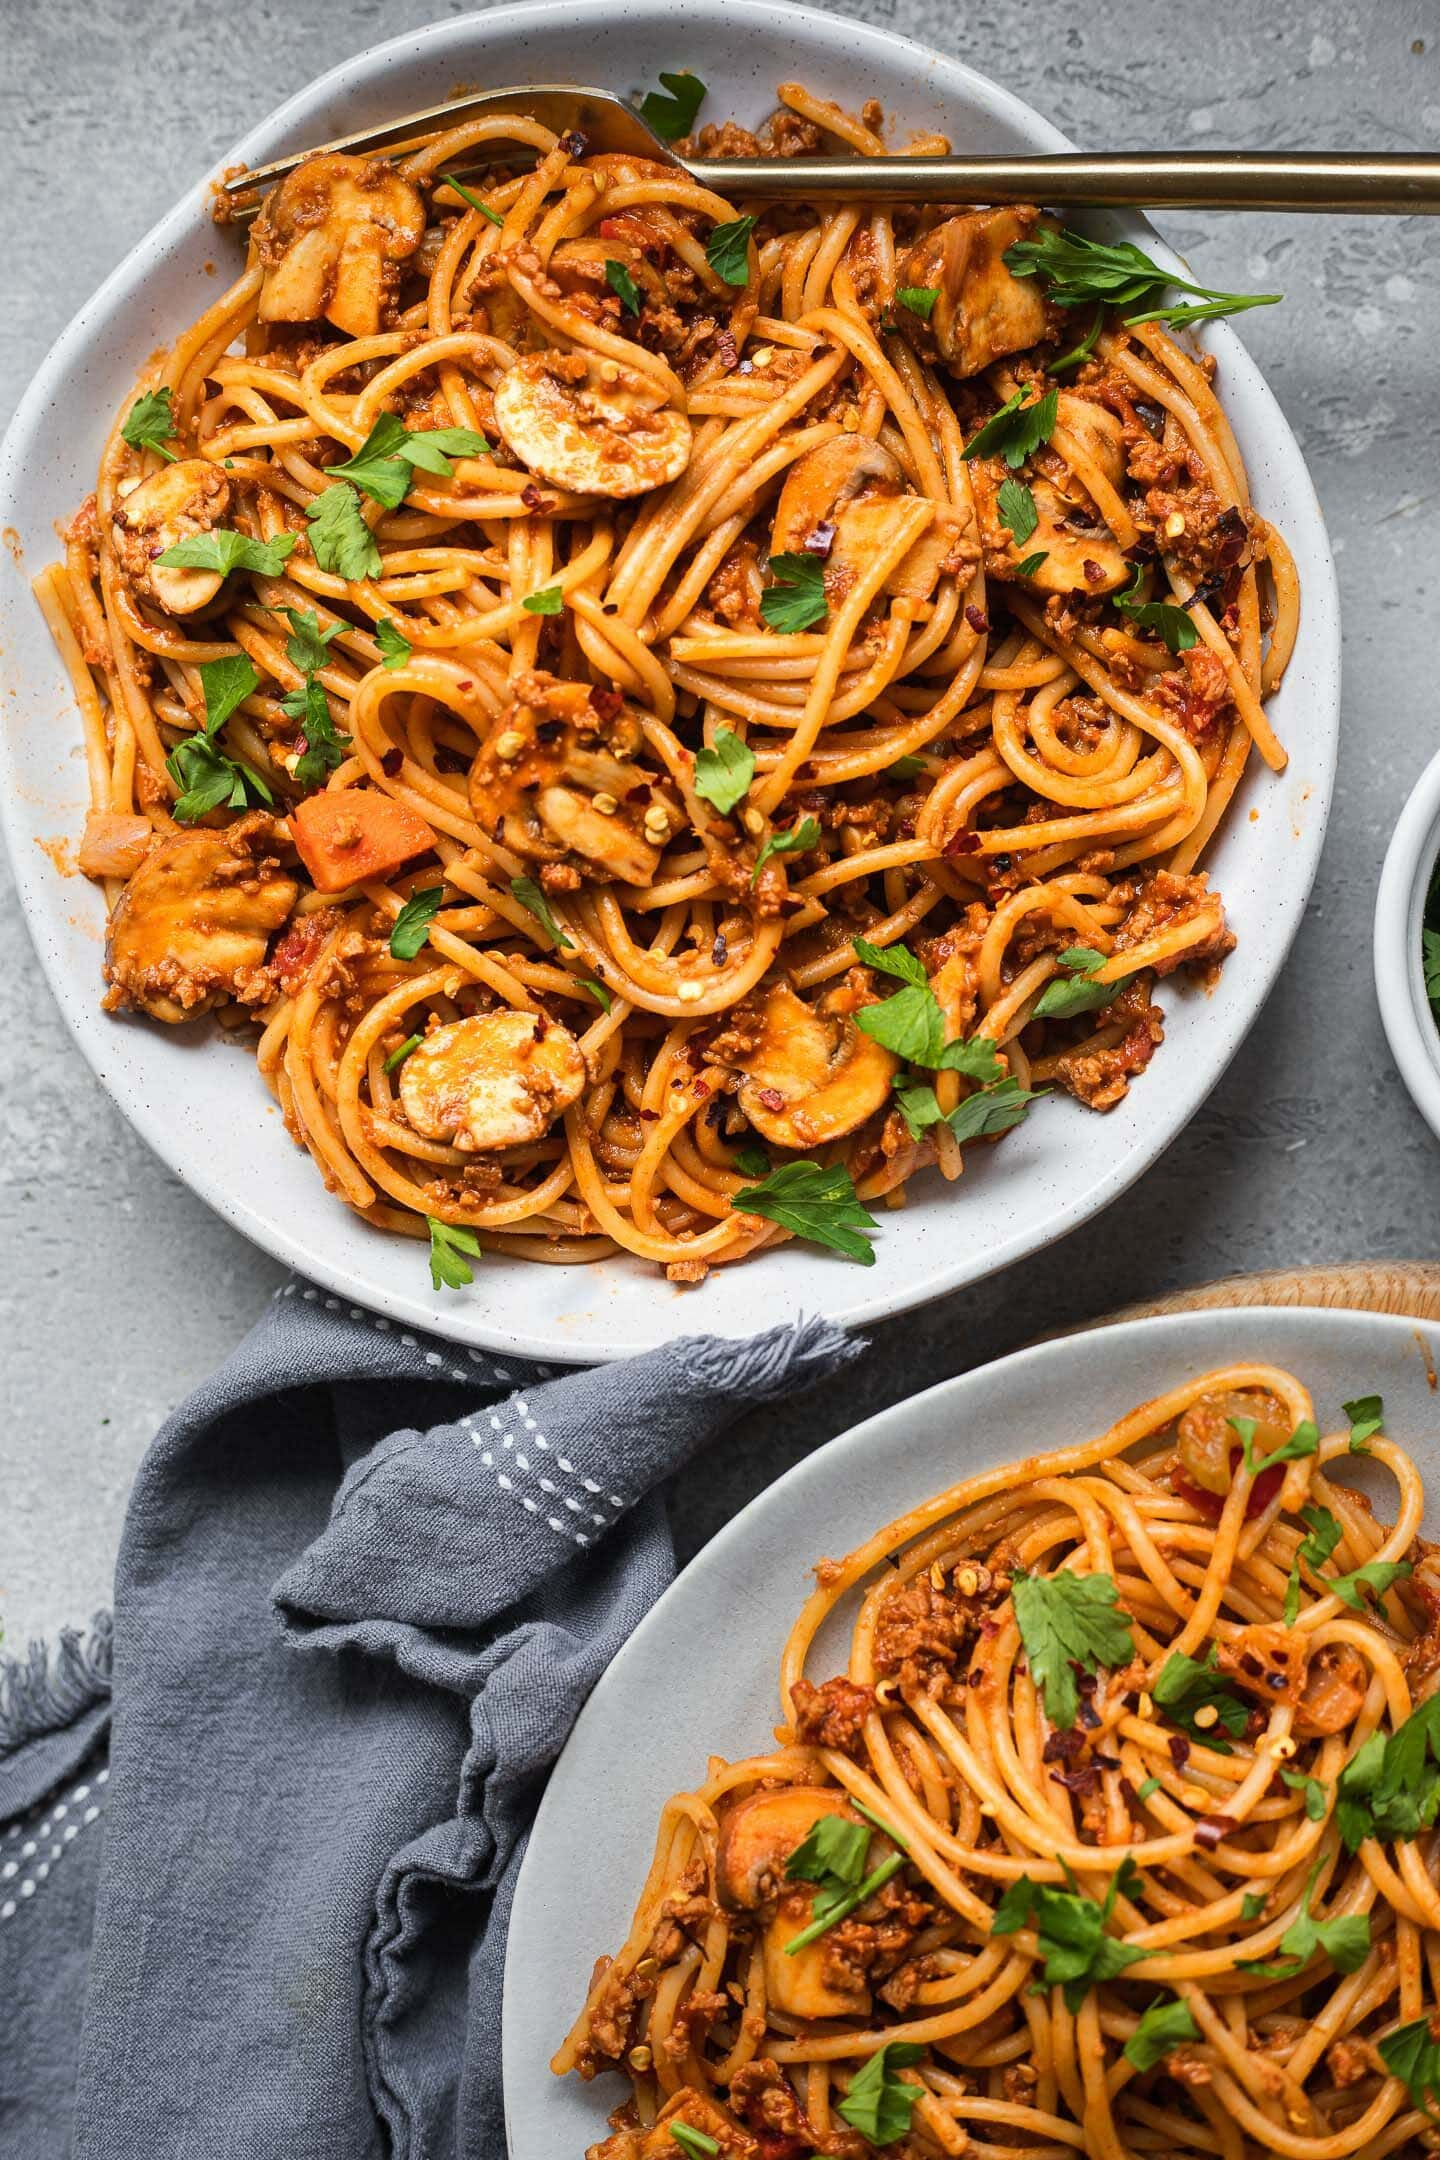 Two bowls of vegetarian spaghetti with a tomato pasta sauce